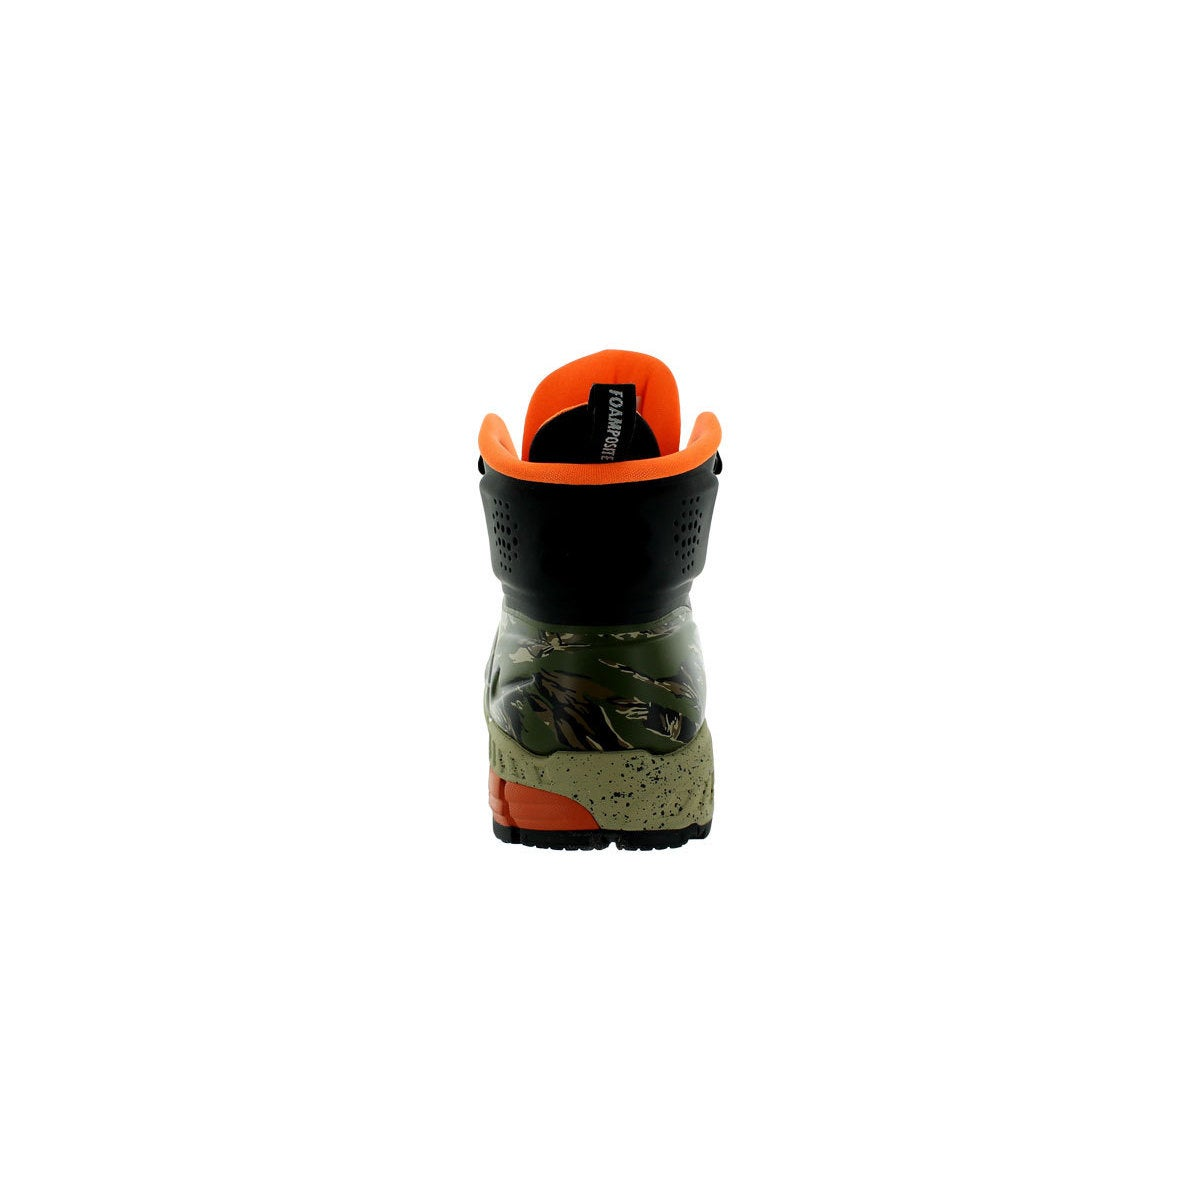 463adf397acd Shop Nike Men s Zoom MW Posite Black Green Orange Boots - Free Shipping  Today - Overstock - 12115612